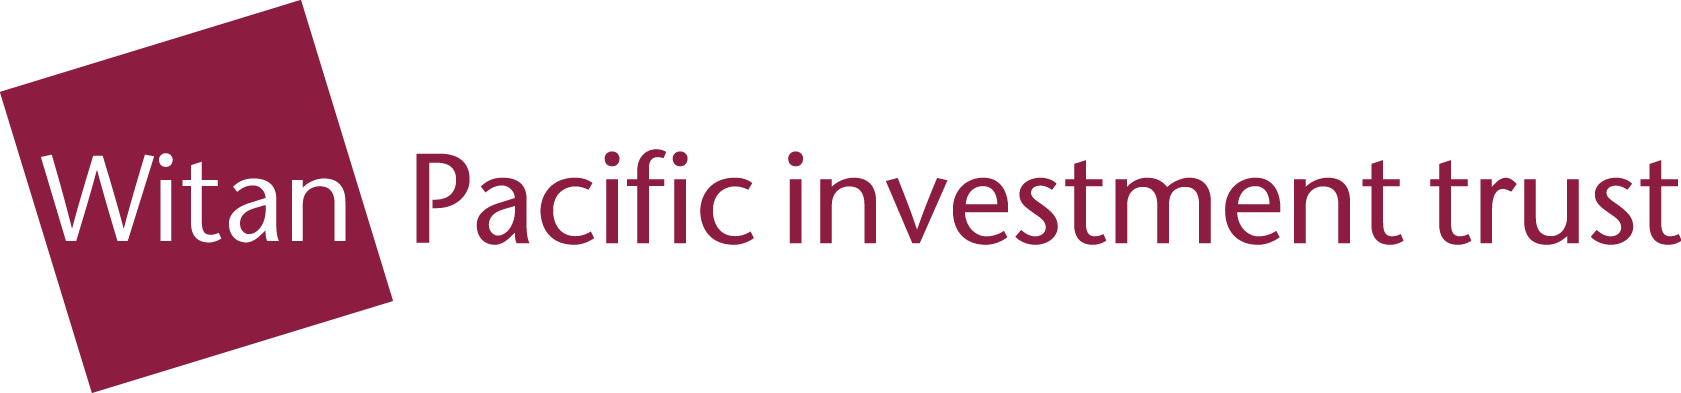 WITAN PACIFIC INVESTMENT TRUST PLC Logo